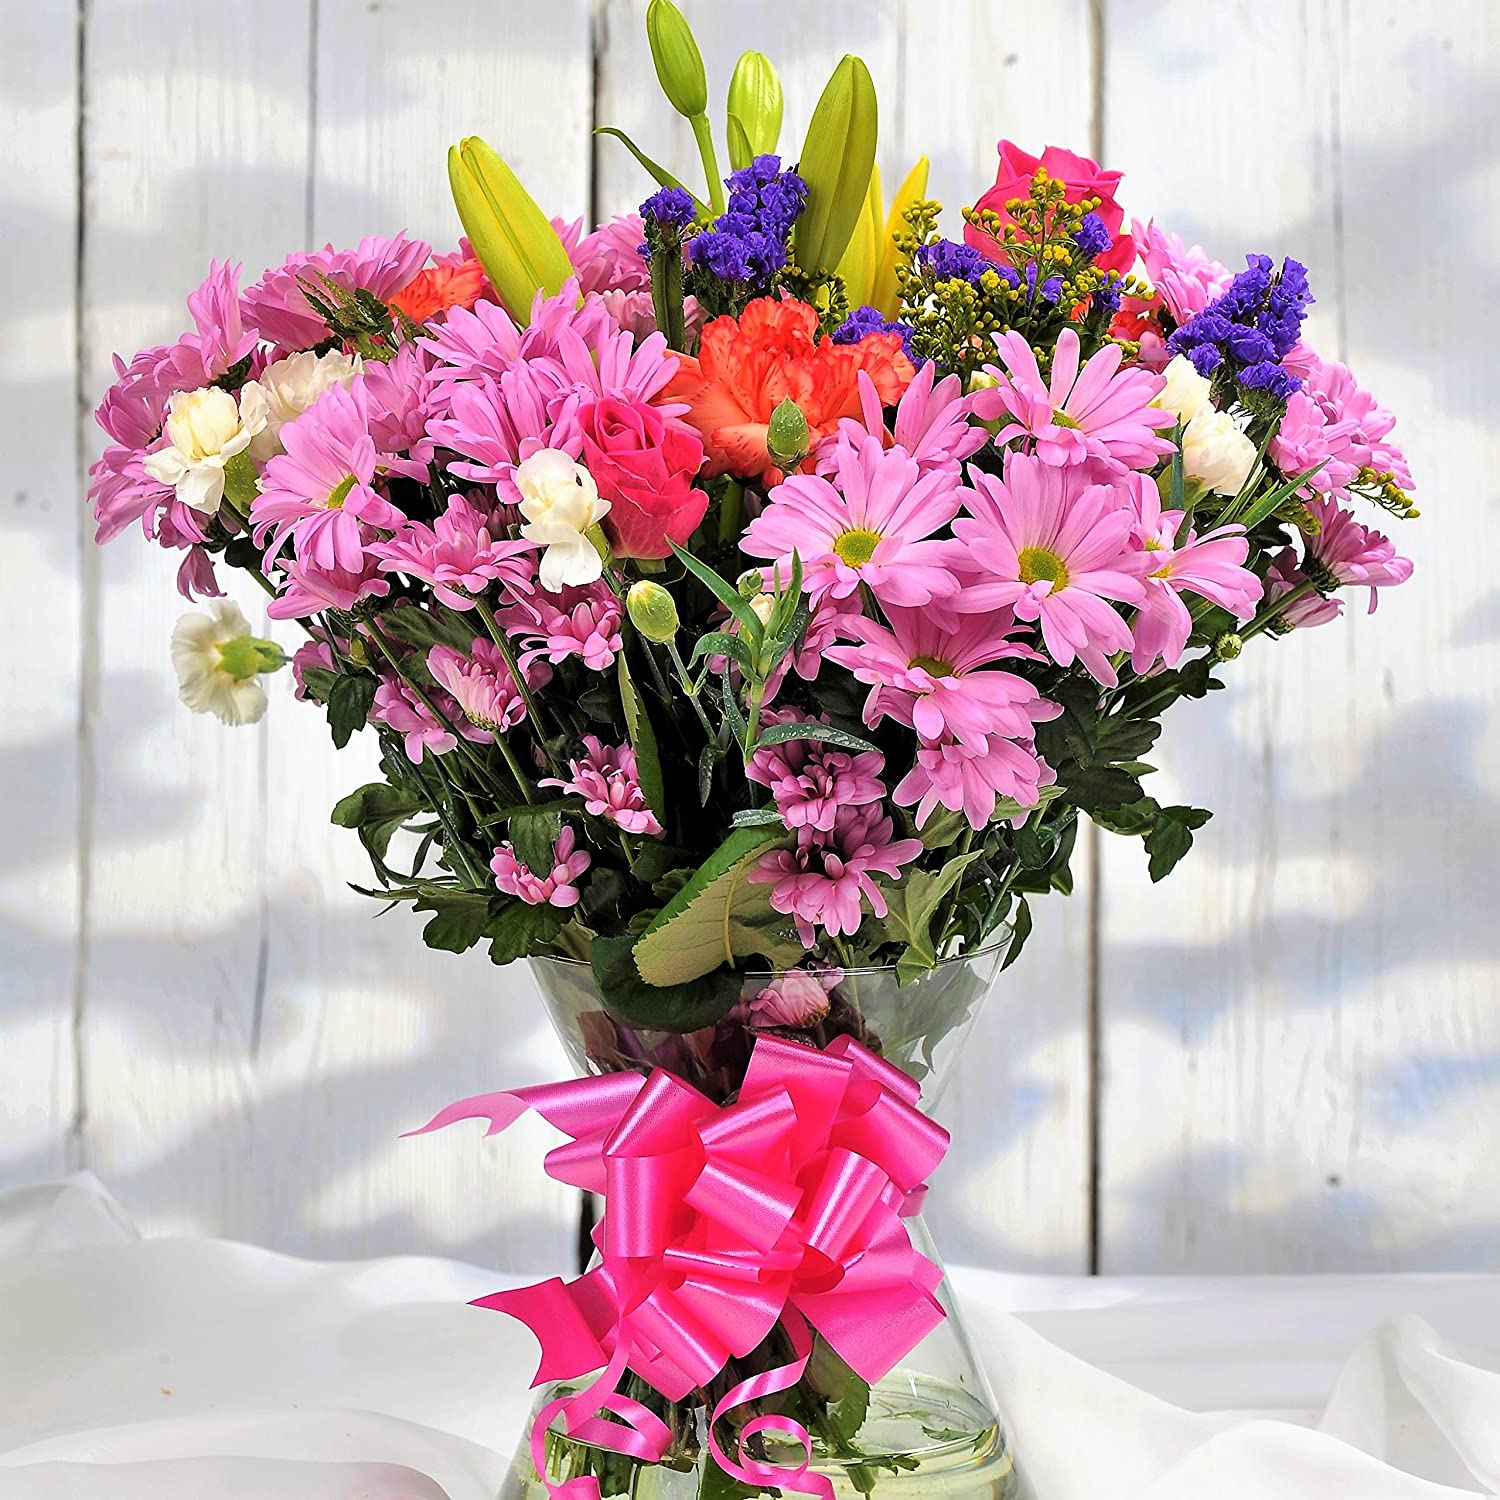 Bouquets sprays wreaths garden outdoors bouquets fresh best value fresh flowers izmirmasajfo